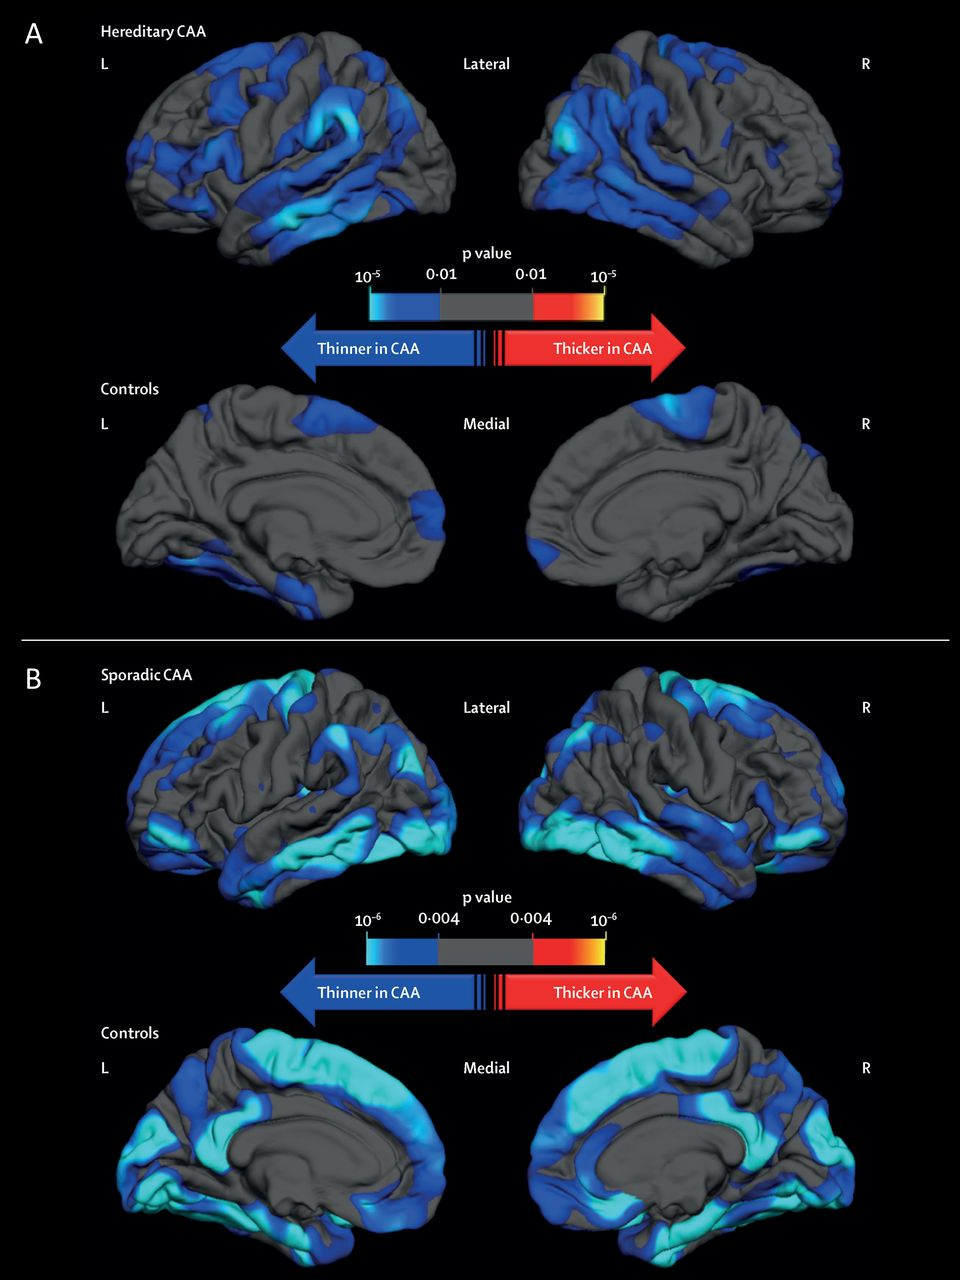 The increasing impact of cerebral amyloid angiopathy